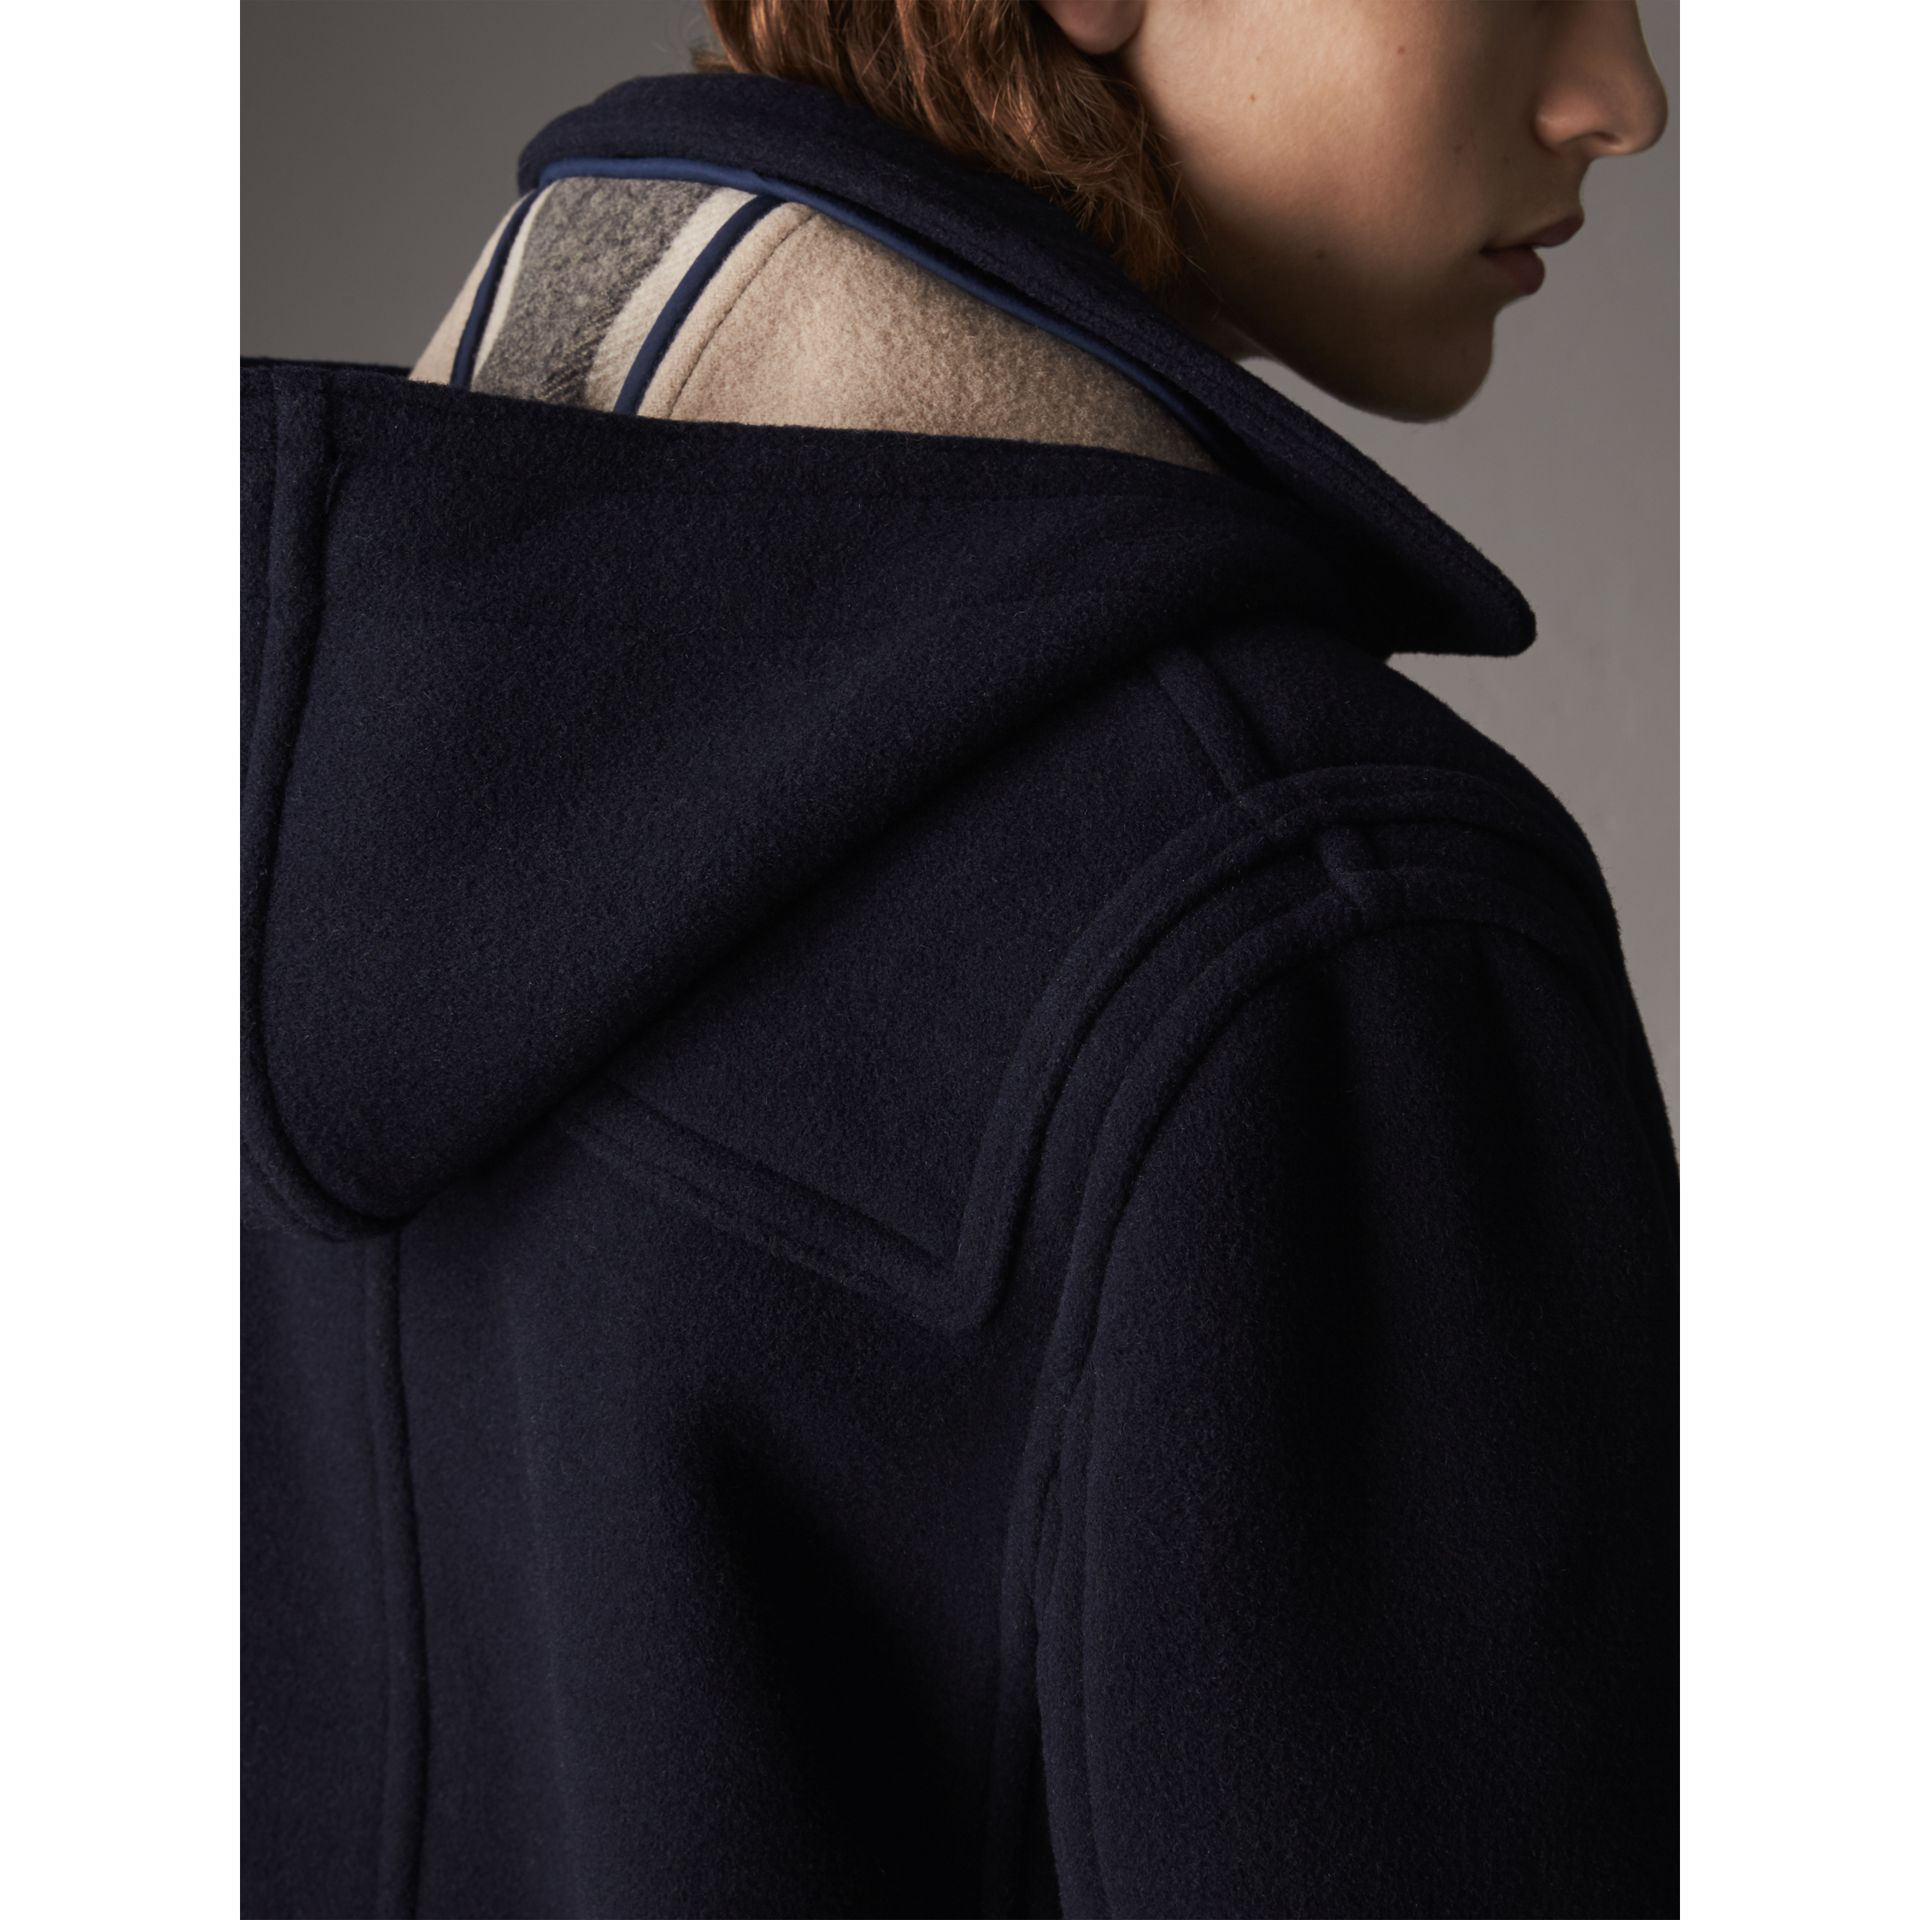 Wool Duffle Jacket with Detachable Hood in Navy - Men | Burberry - gallery image 5